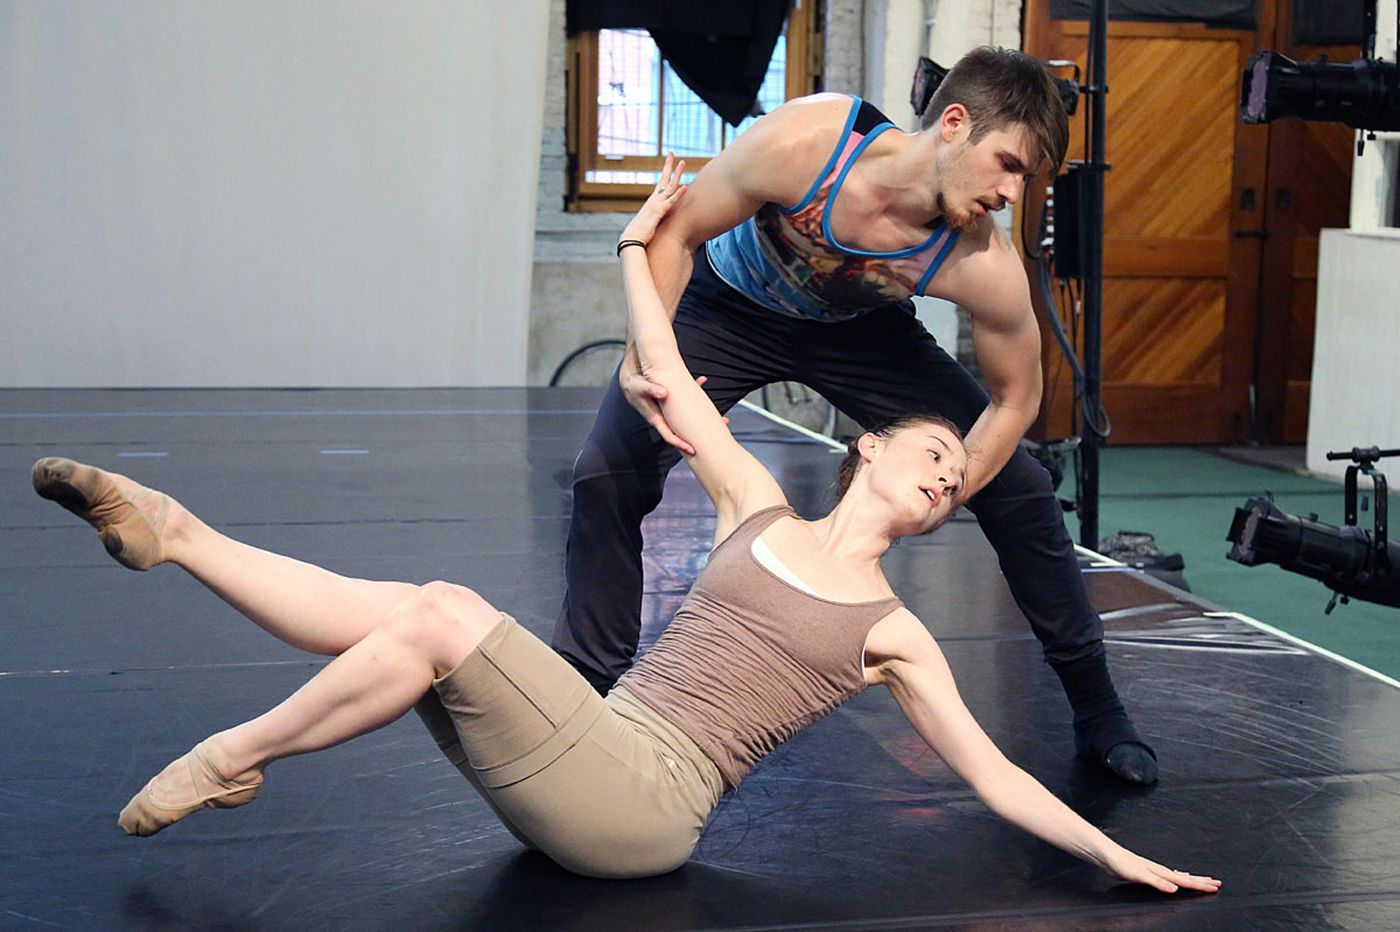 Returning to BalletX with ideas about nature and nurture